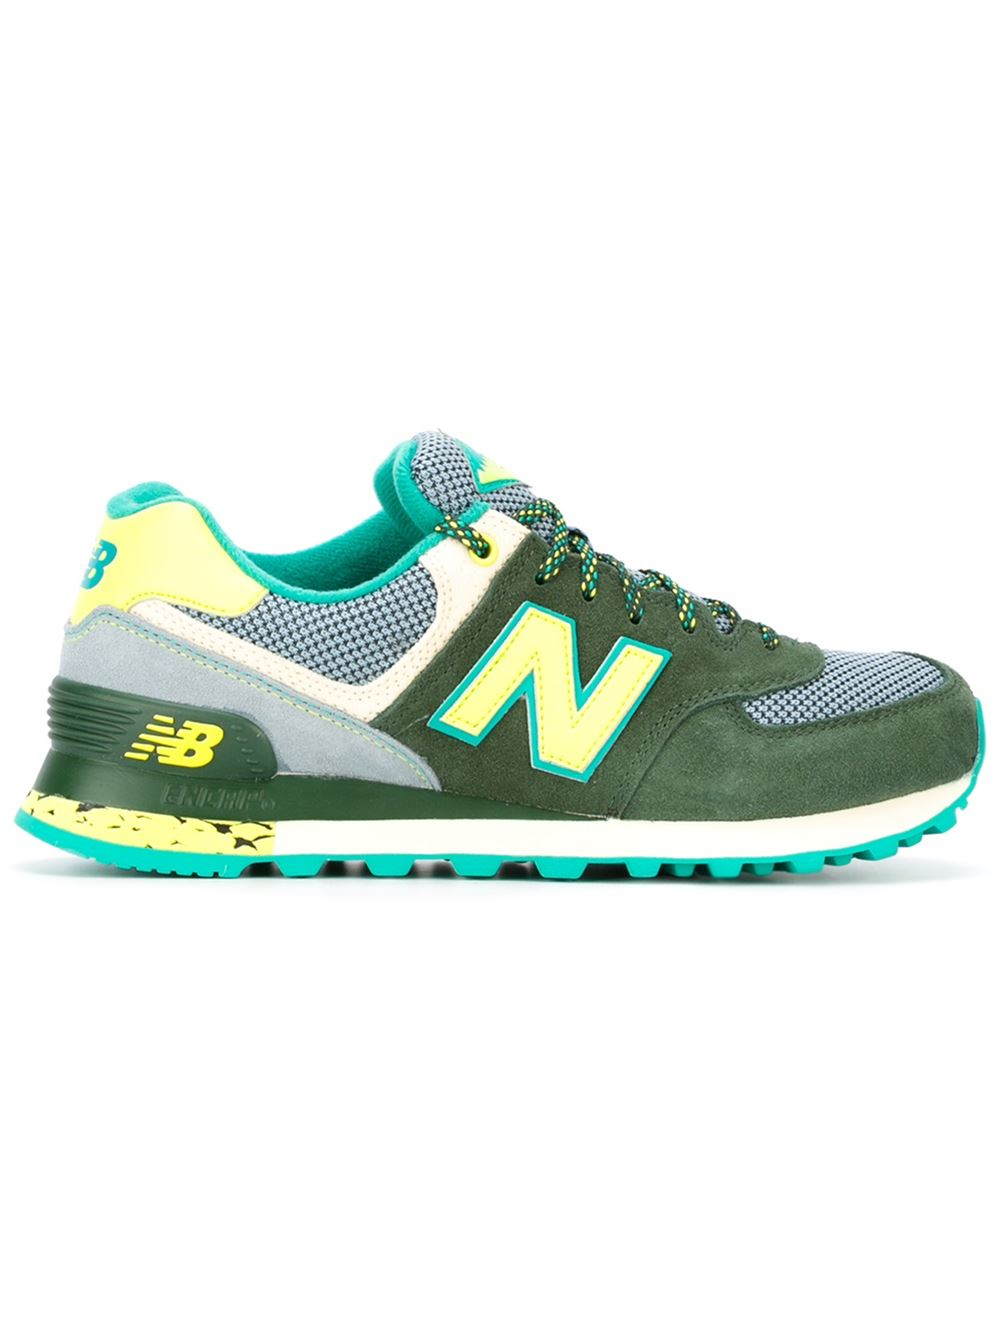 new balance 574 sneakers 28 images new balance. Black Bedroom Furniture Sets. Home Design Ideas